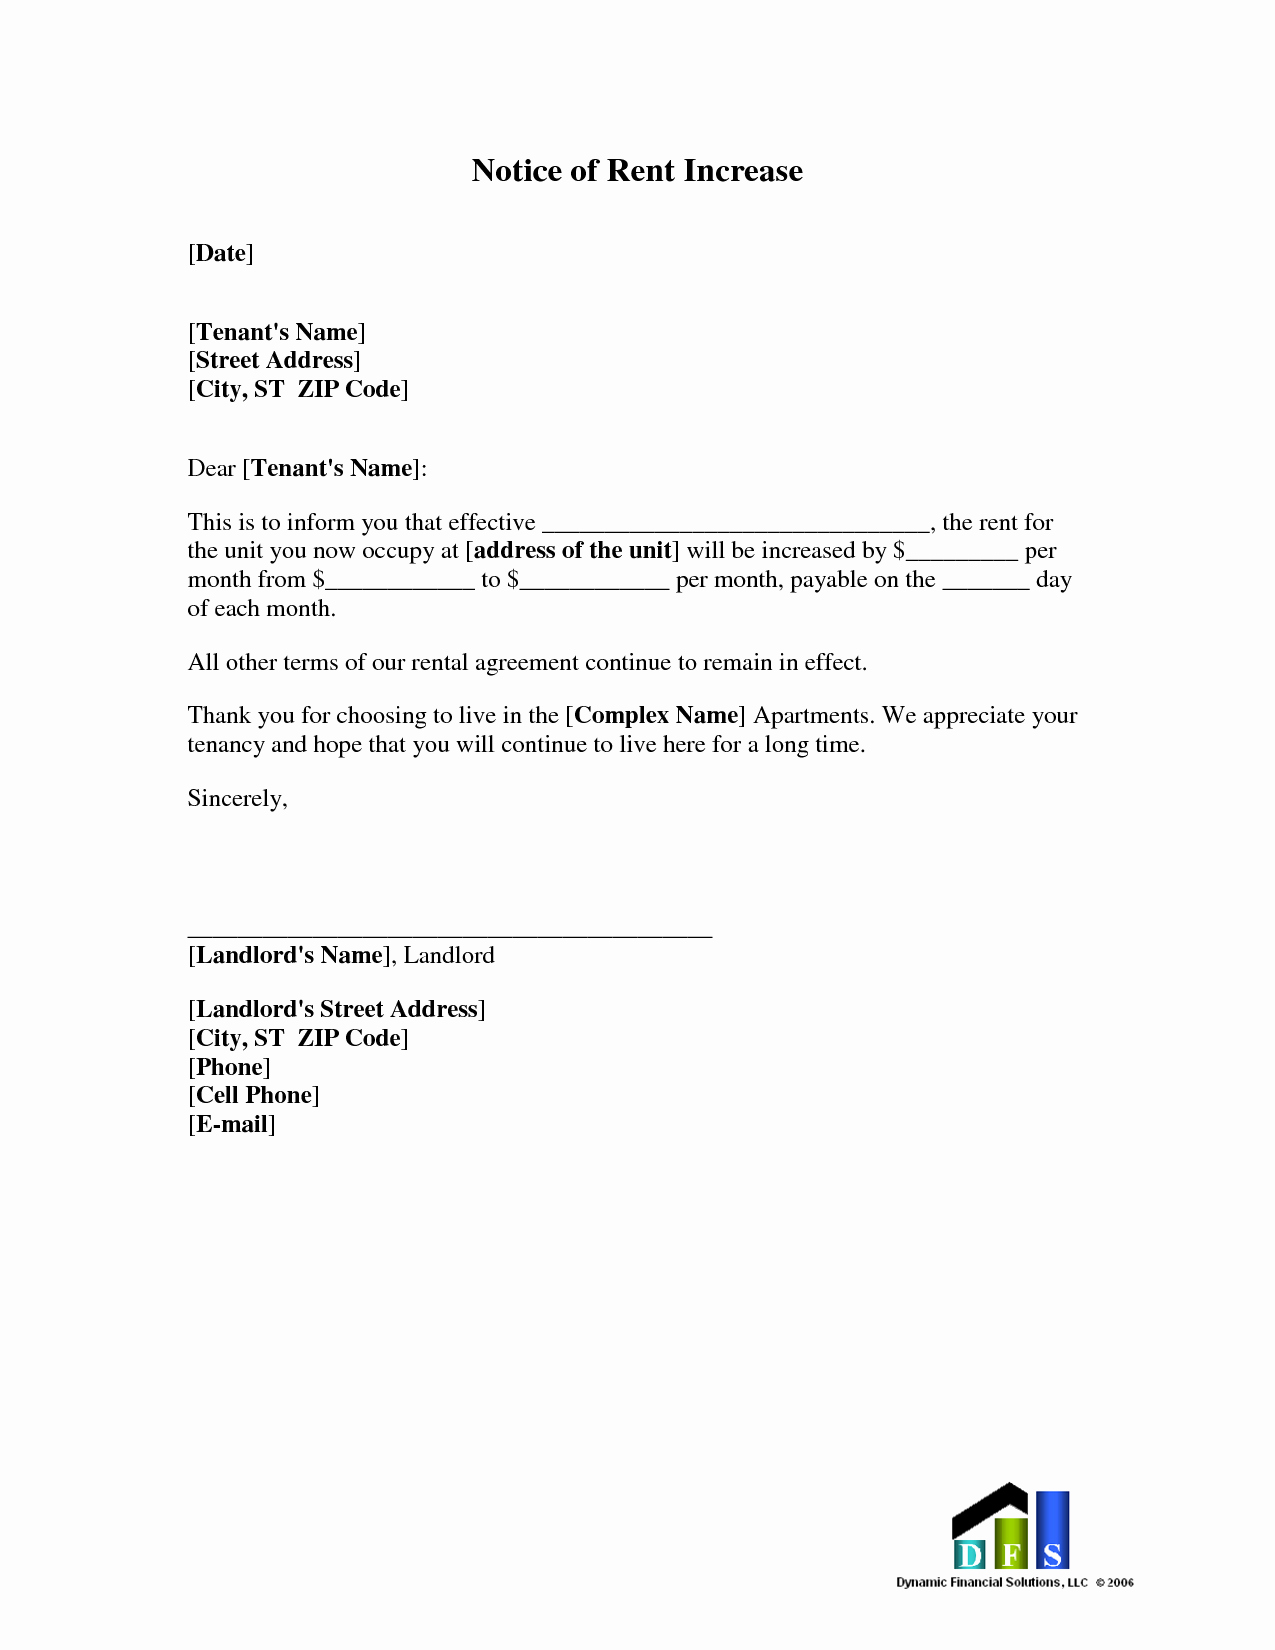 Rental Increase Letter Template New Best S Of Rent Increase Letter to Tenant In